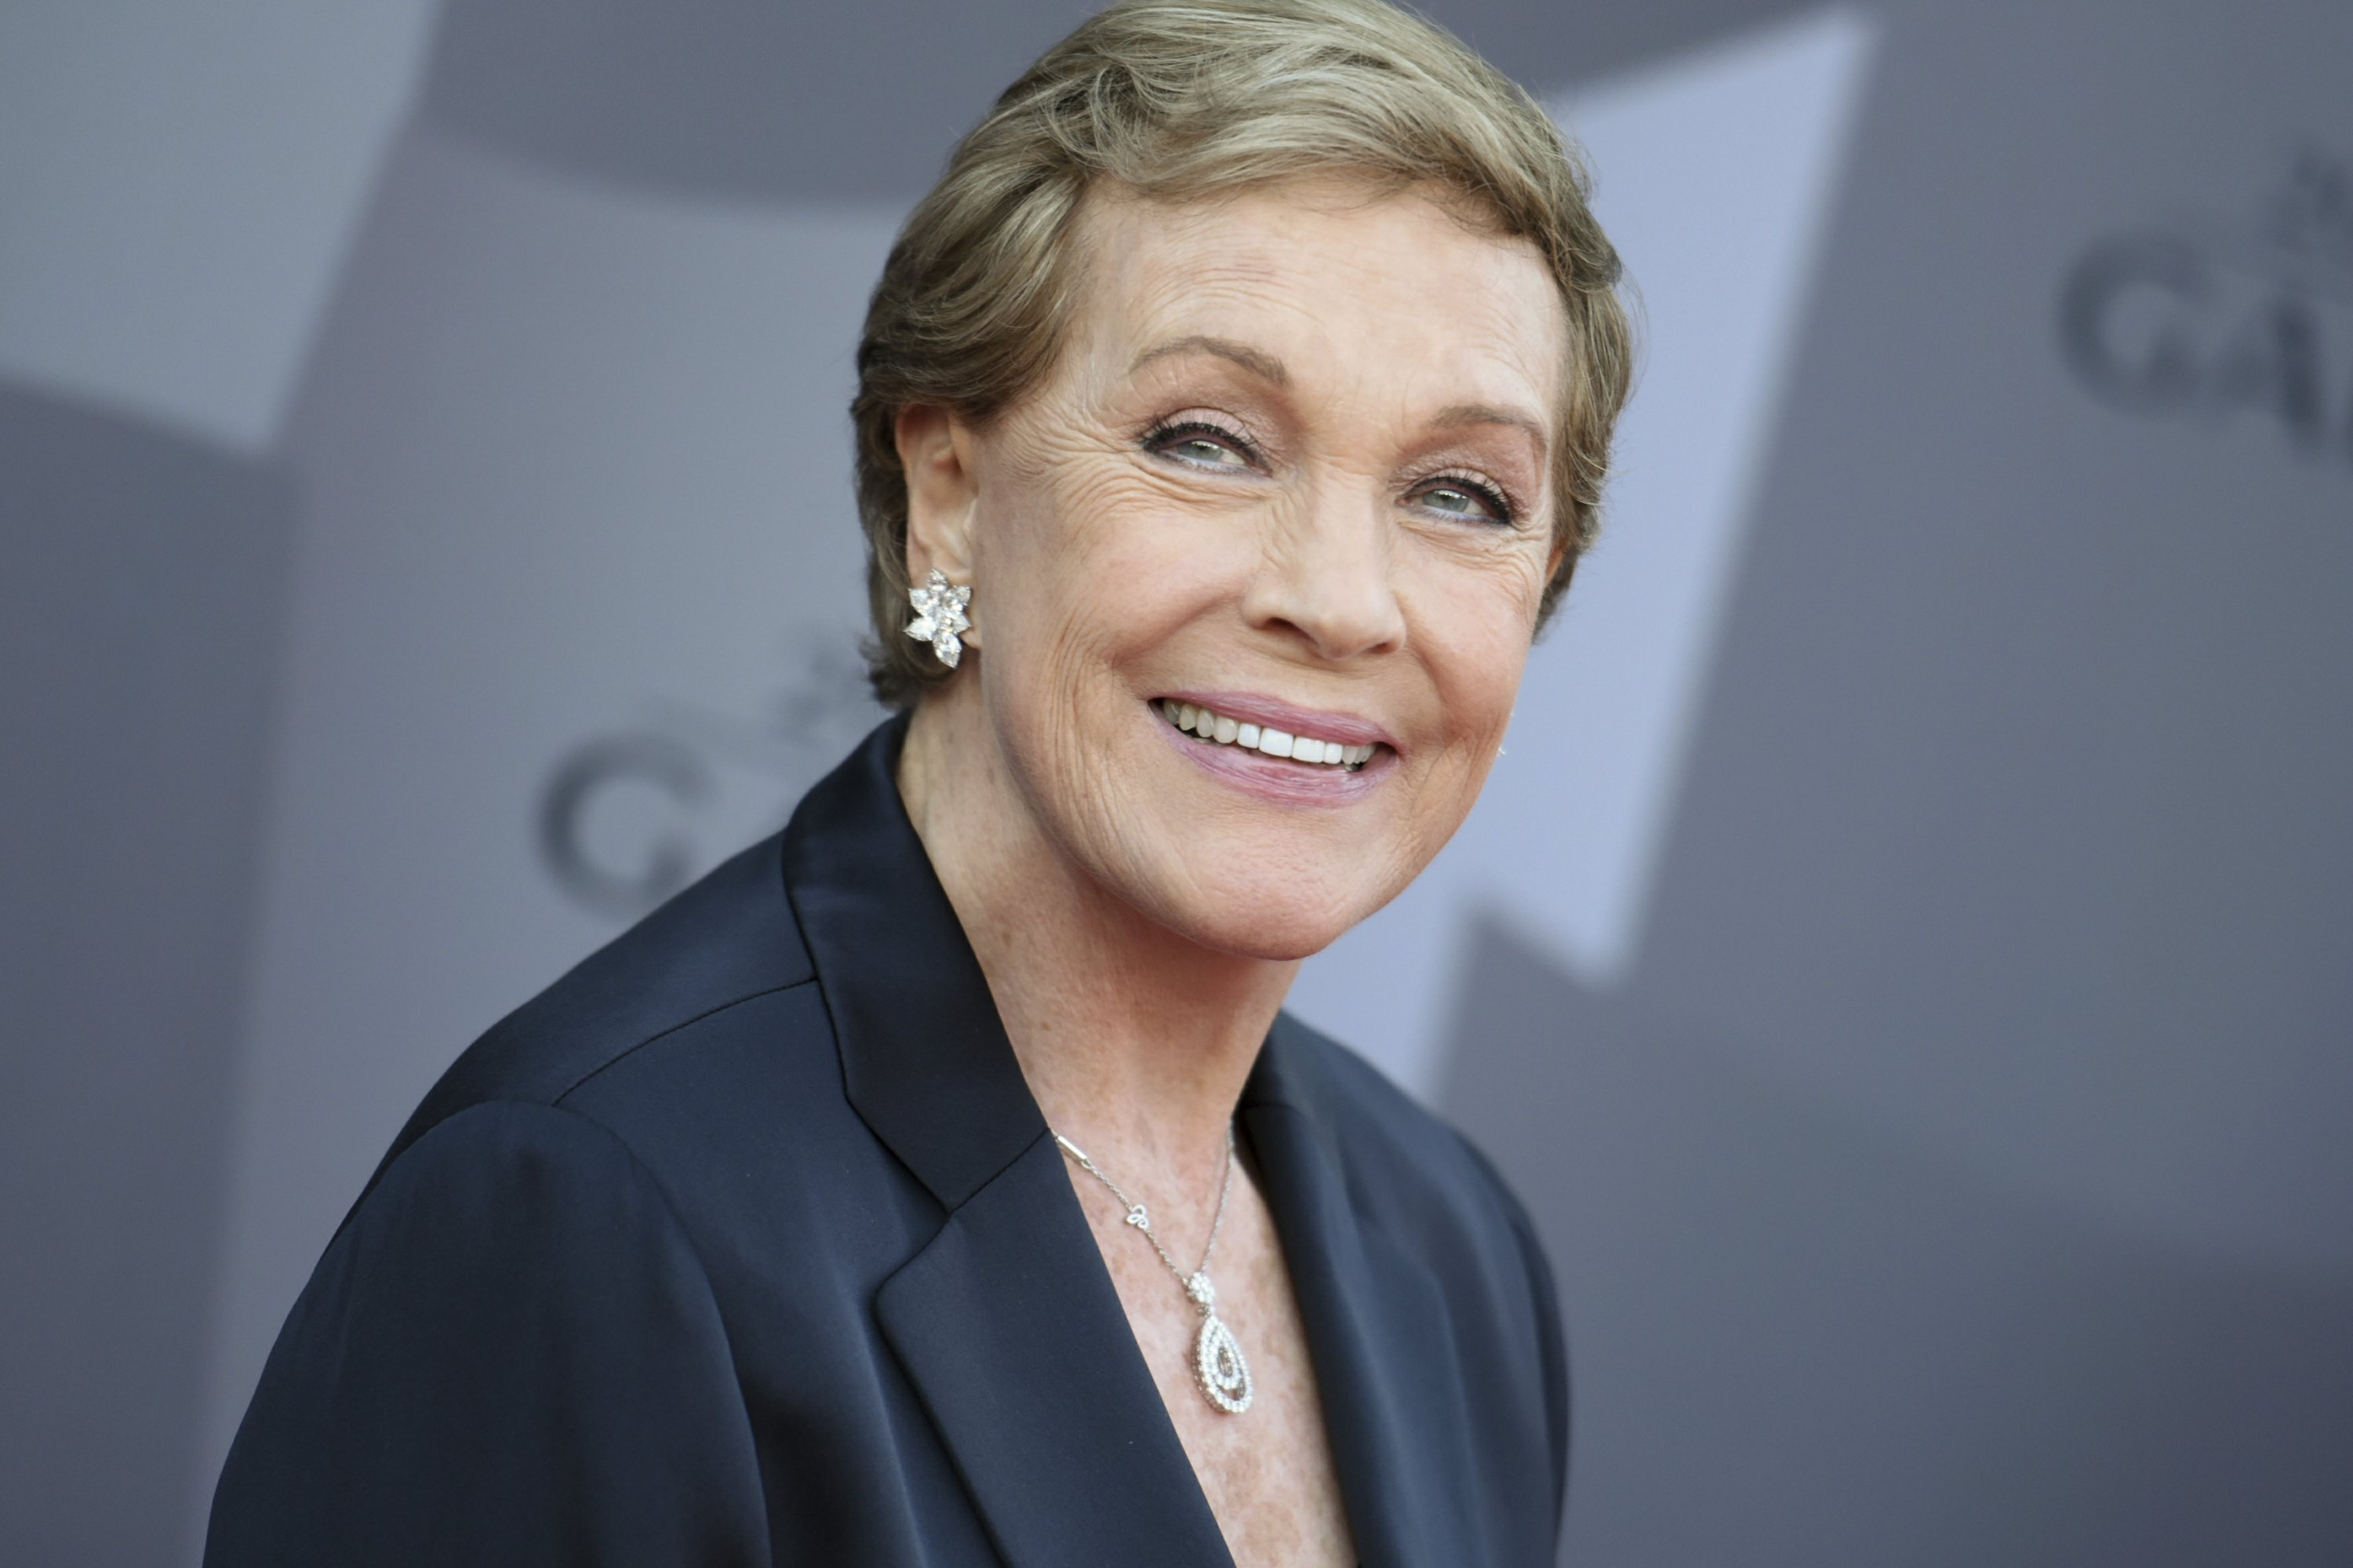 Julie Andrews to receive American Film Institute honor